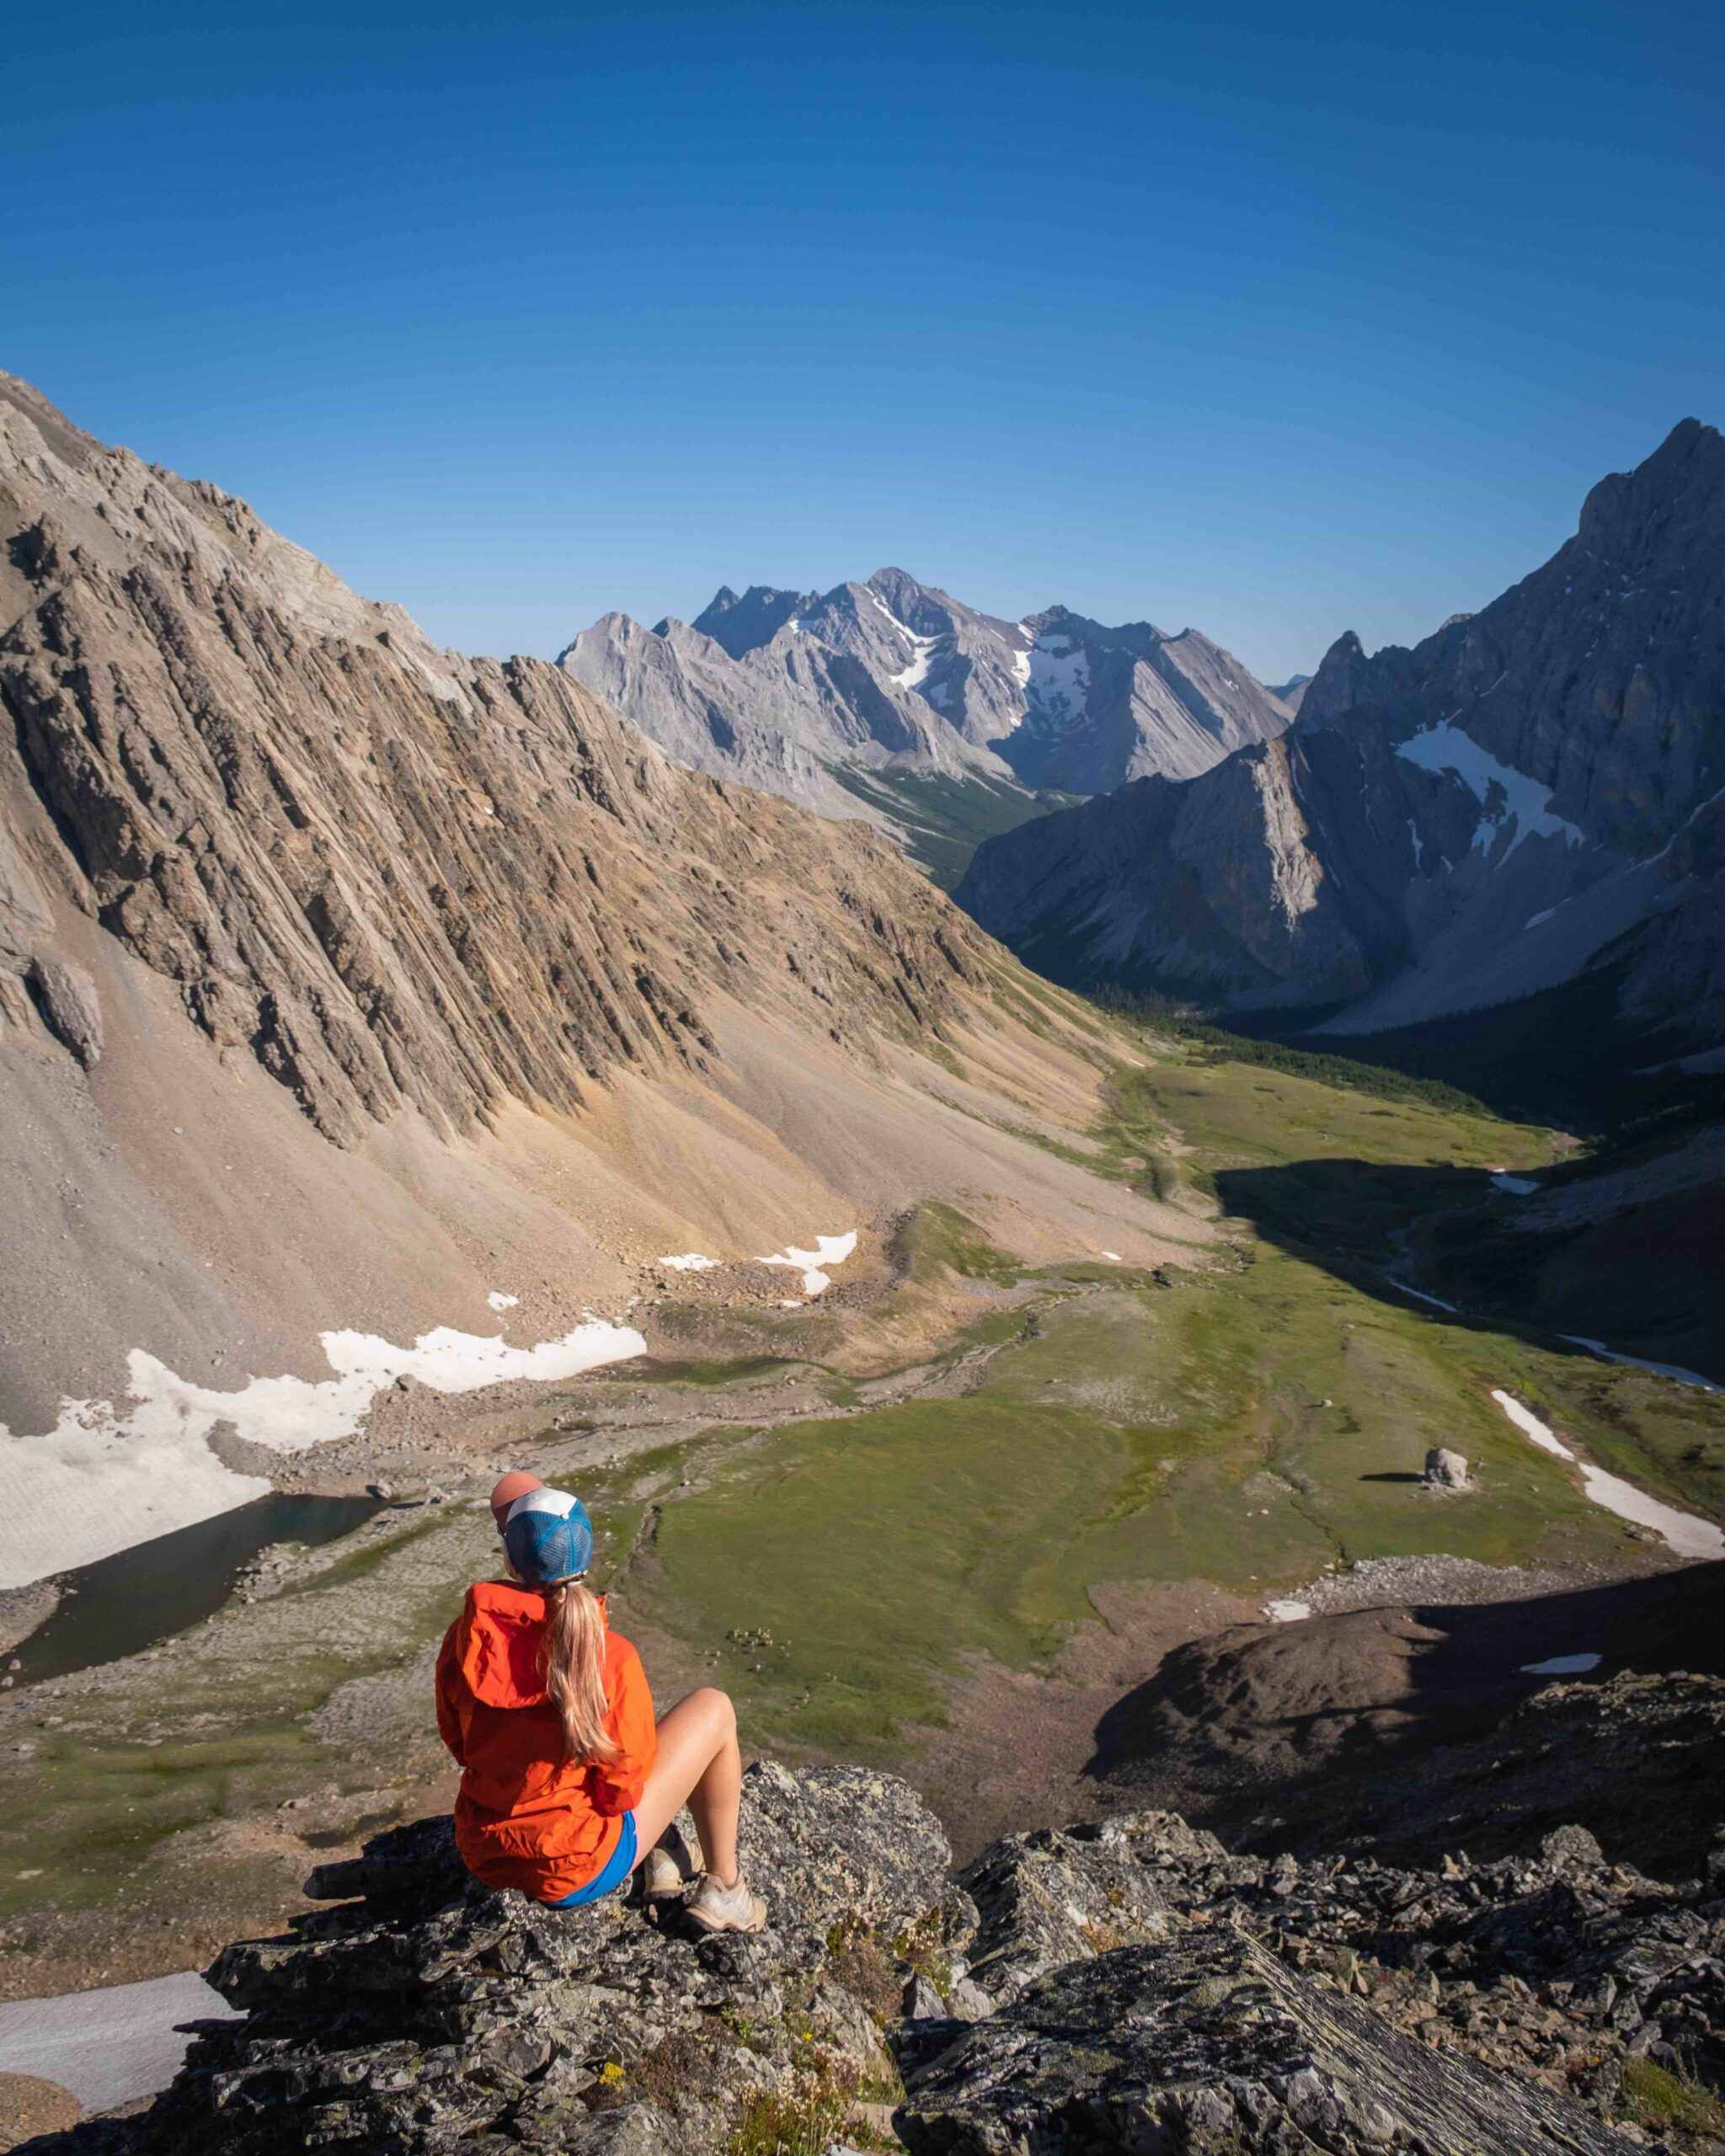 Hiking in the Canadian Rockies